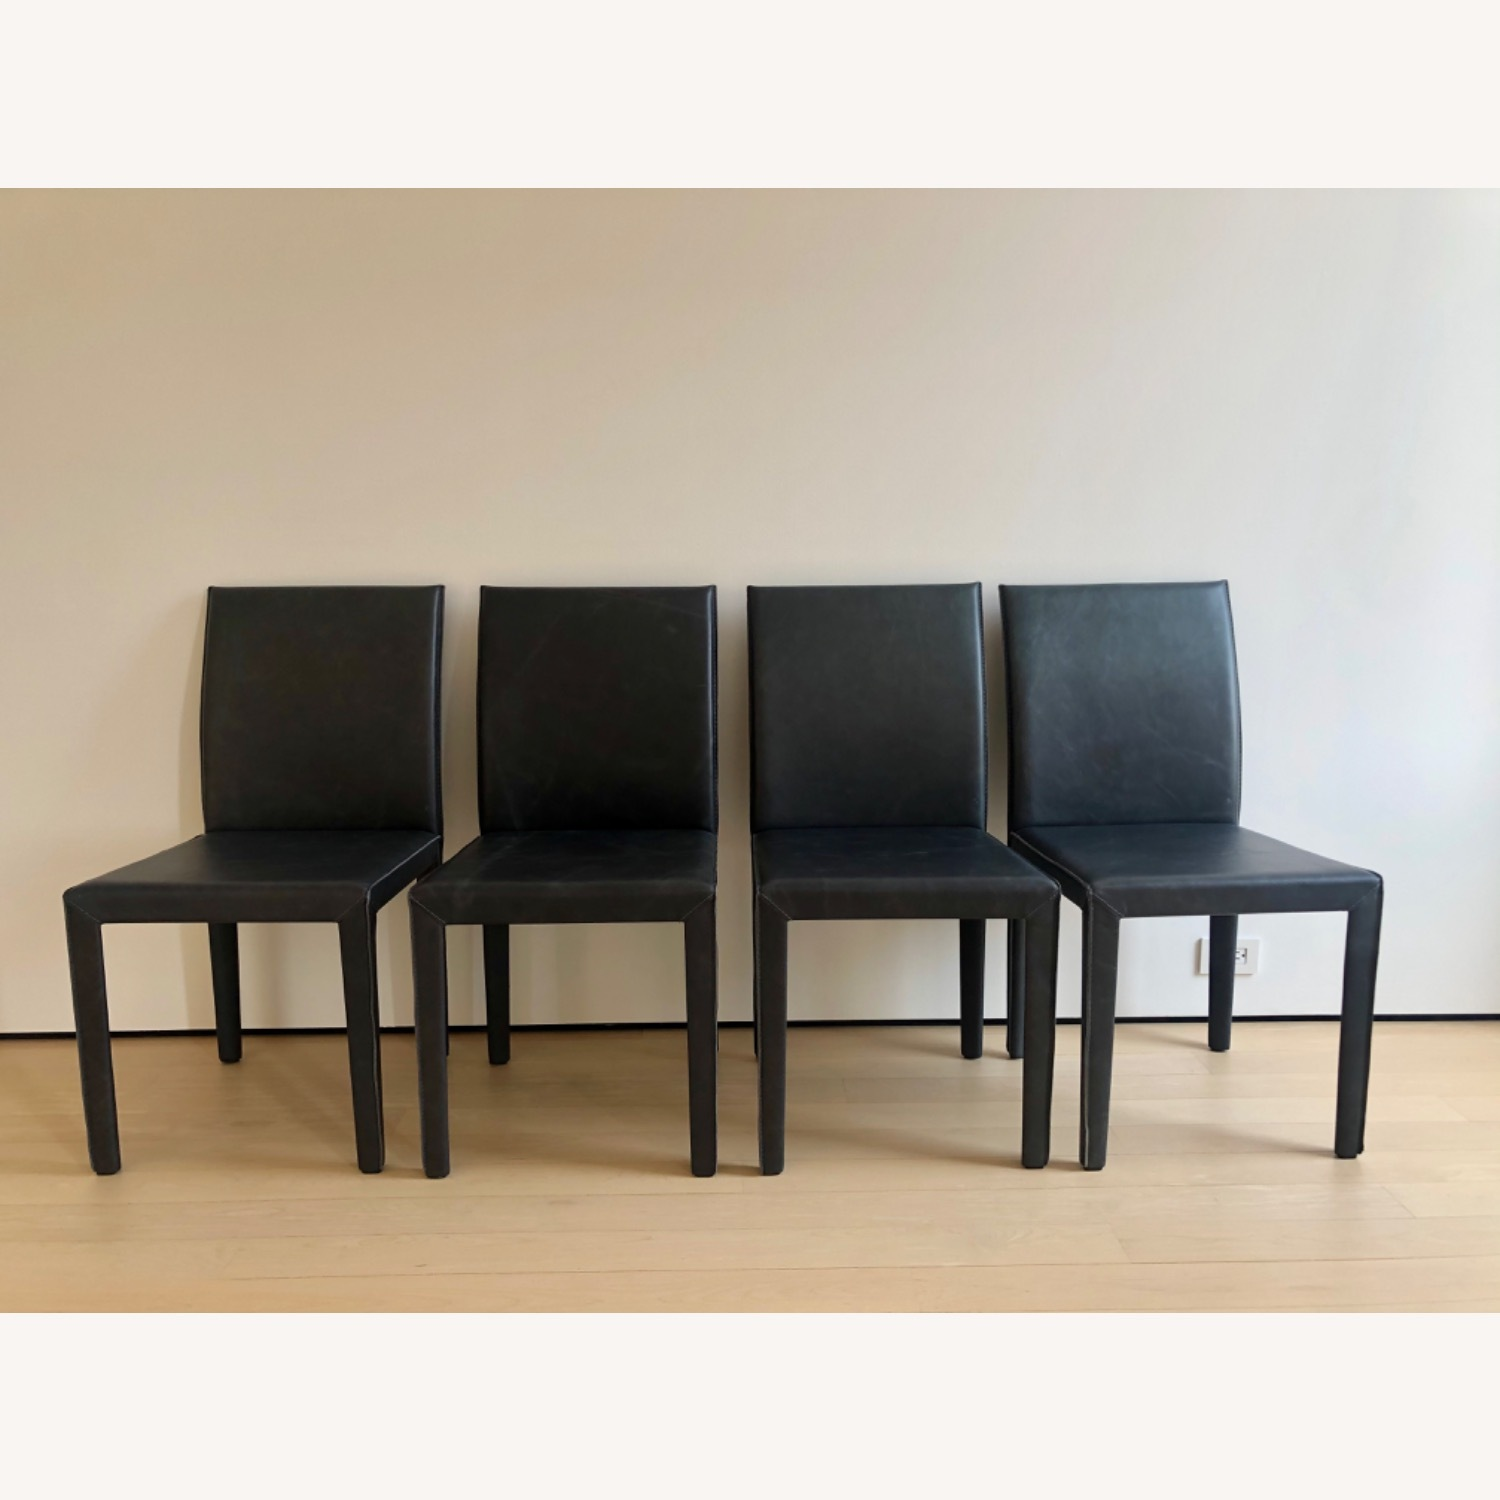 Crate & Barrel Leather Dining Chairs - image-2